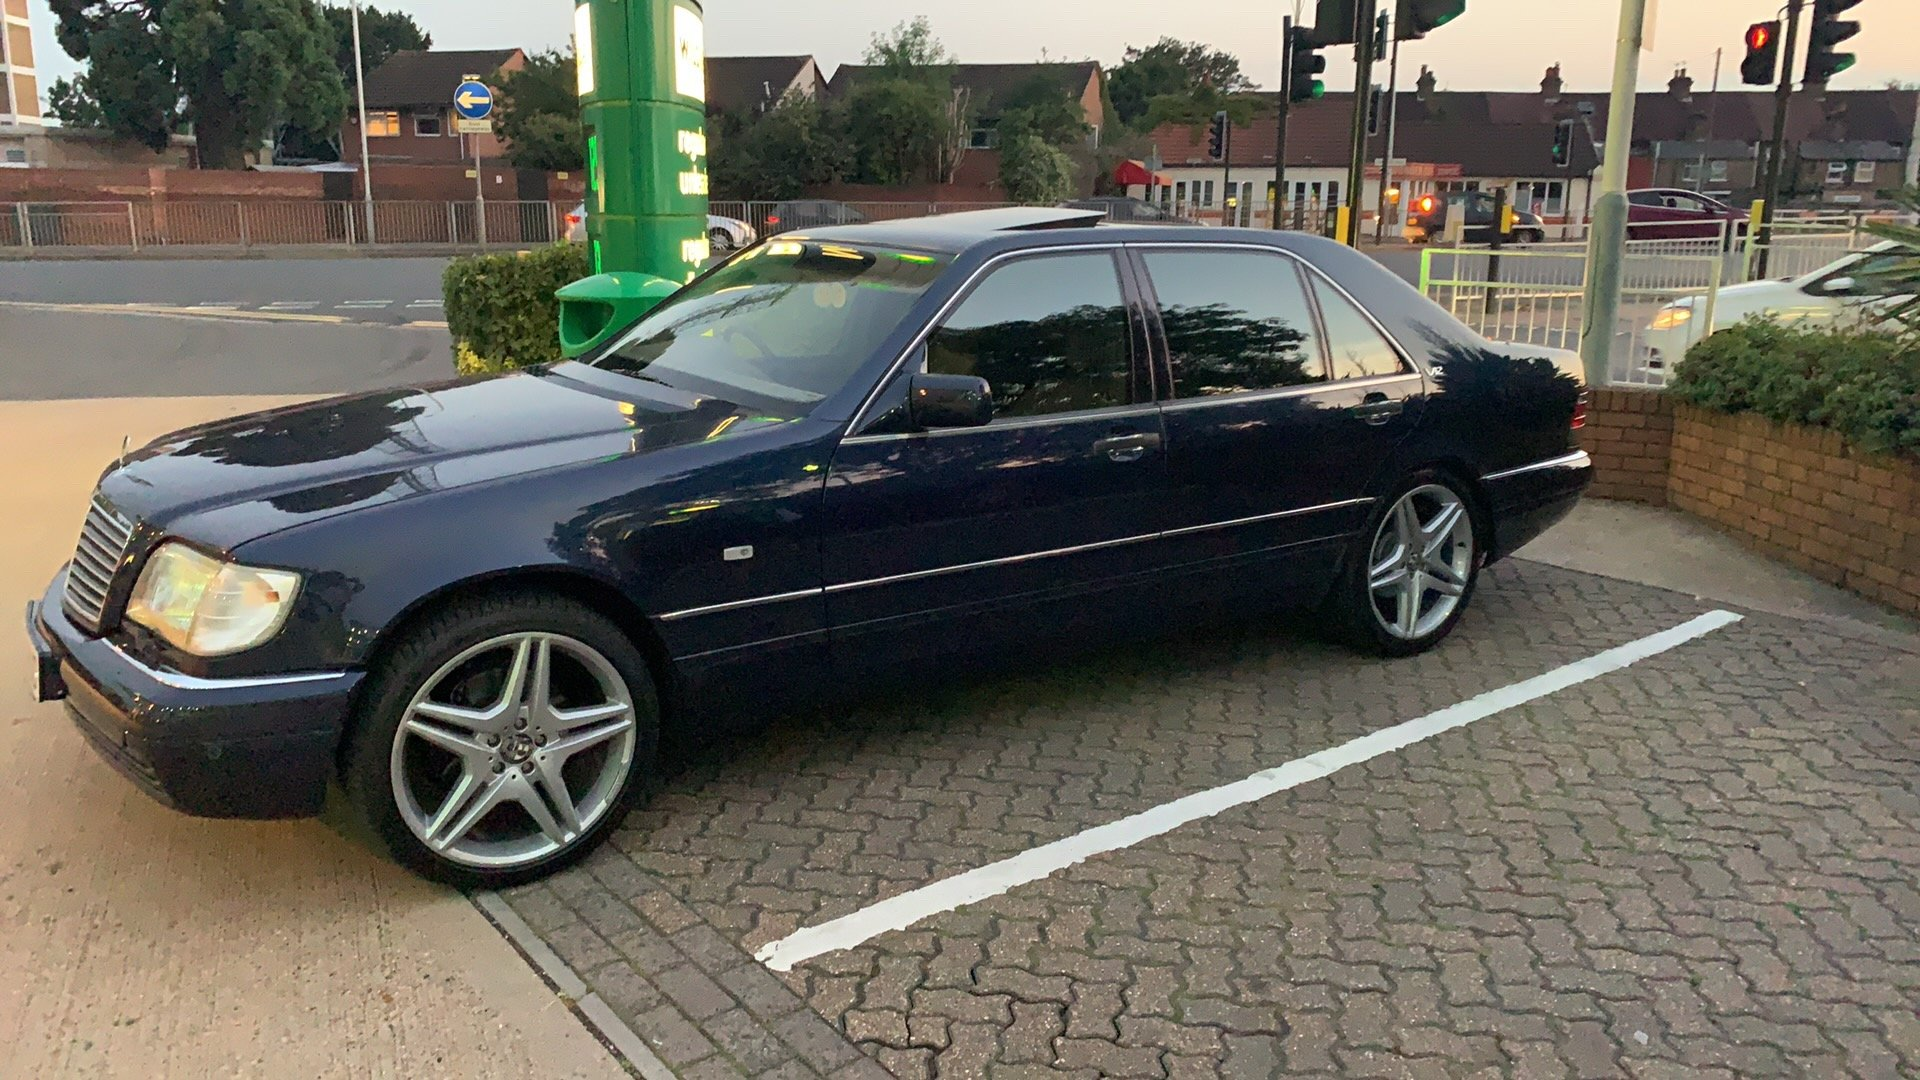 1997 Mercedes w140 s600 For Sale (picture 1 of 6)